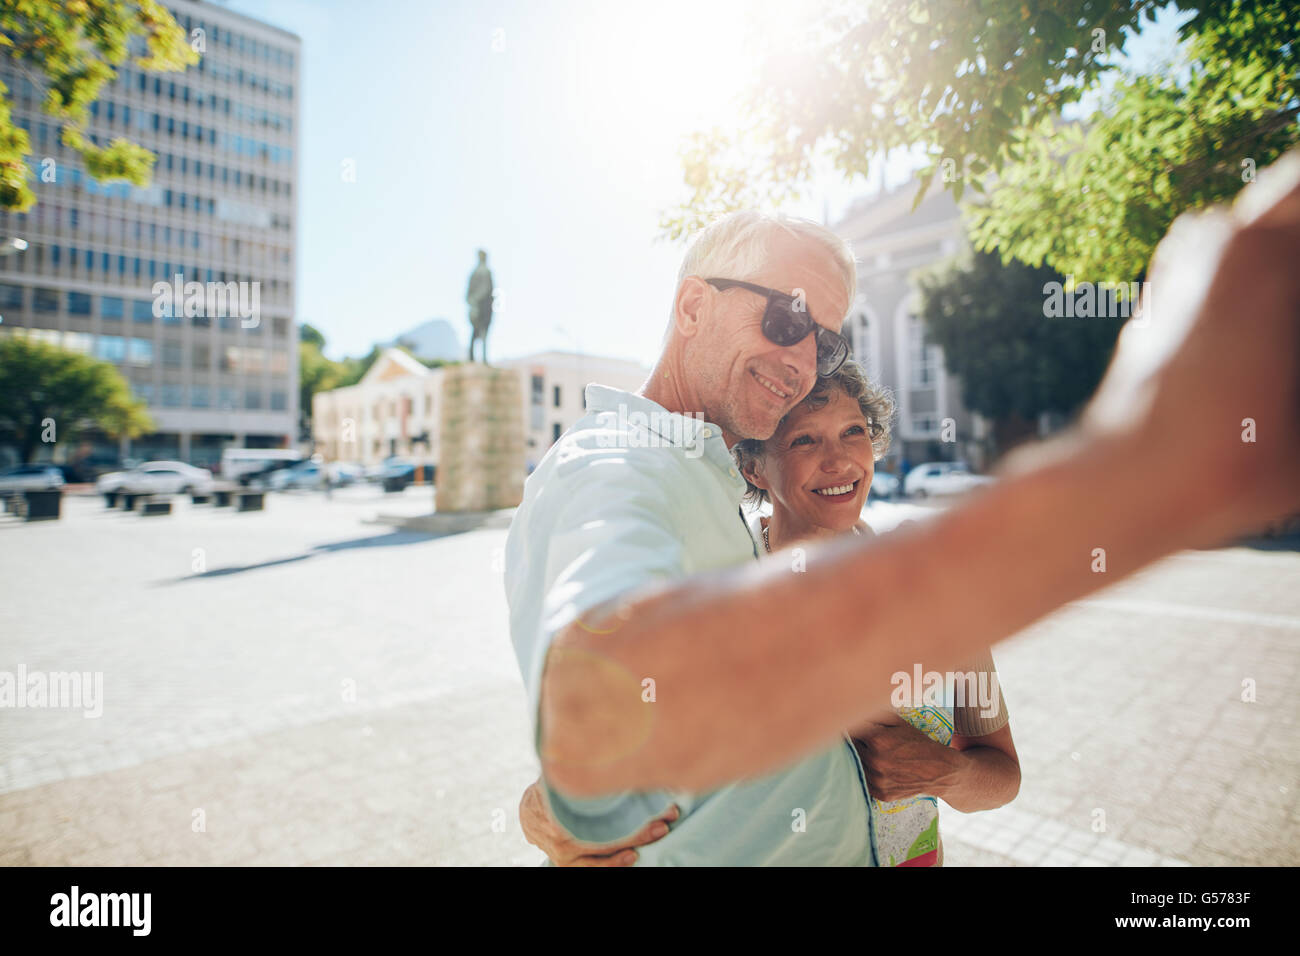 Happy and affectionate senior couple embracing and taking a selfie outdoors. Tourist taking self portraits on their - Stock Image